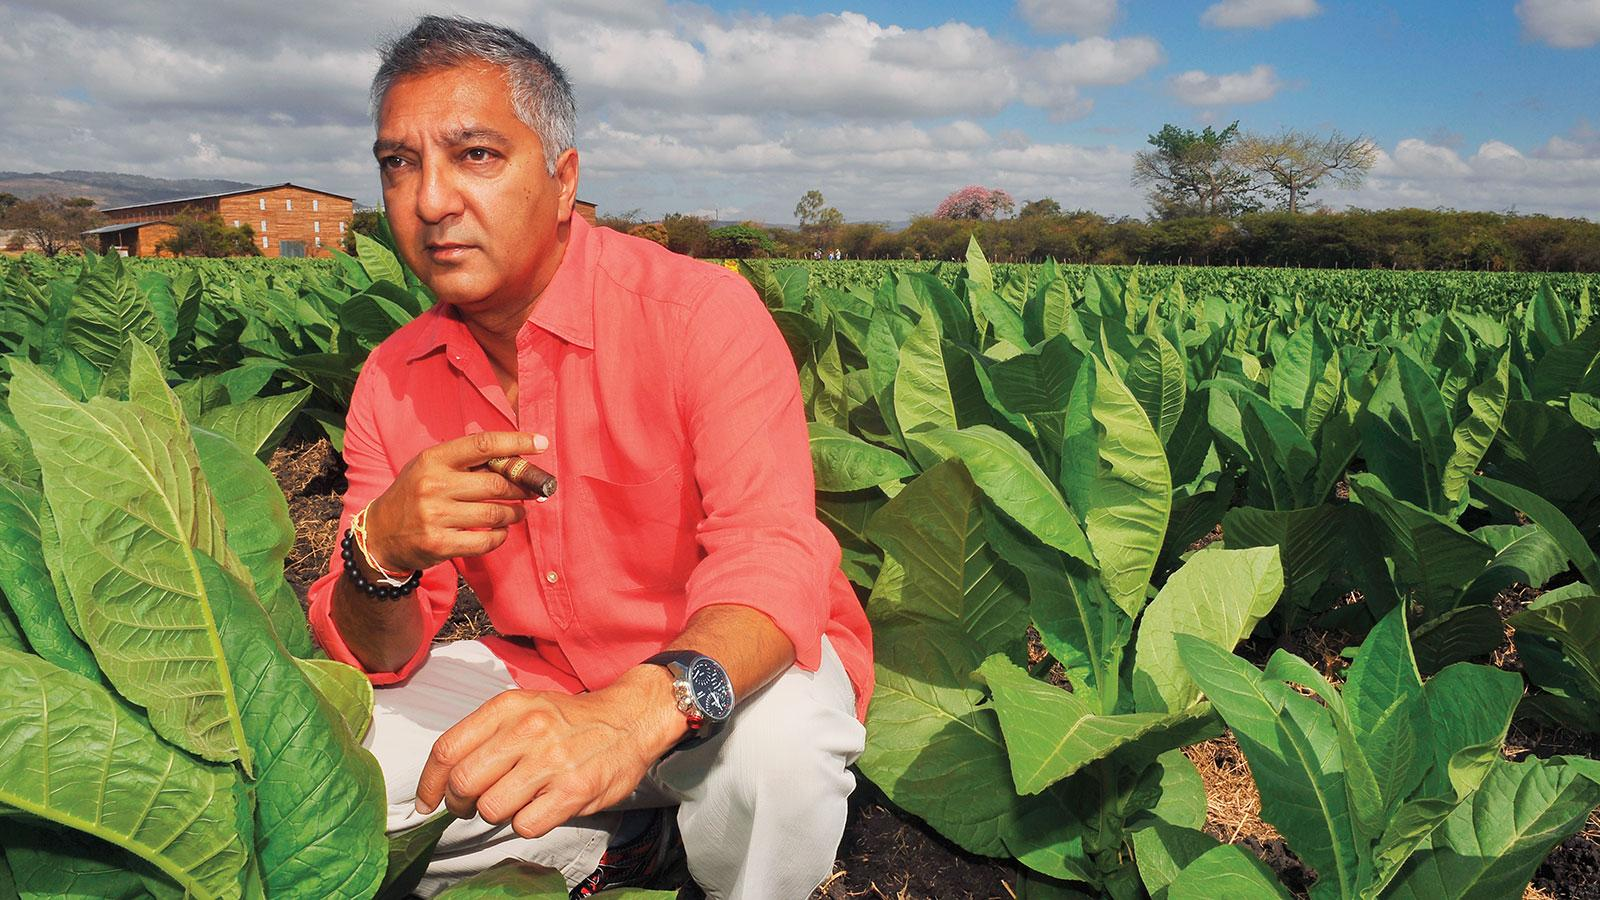 Rocky Patel in a verdant field of tobacco growing in Estelí, Nicaragua, not far from his newest cigar factory. Patel's premium cigar operation is growing ever more integrated.